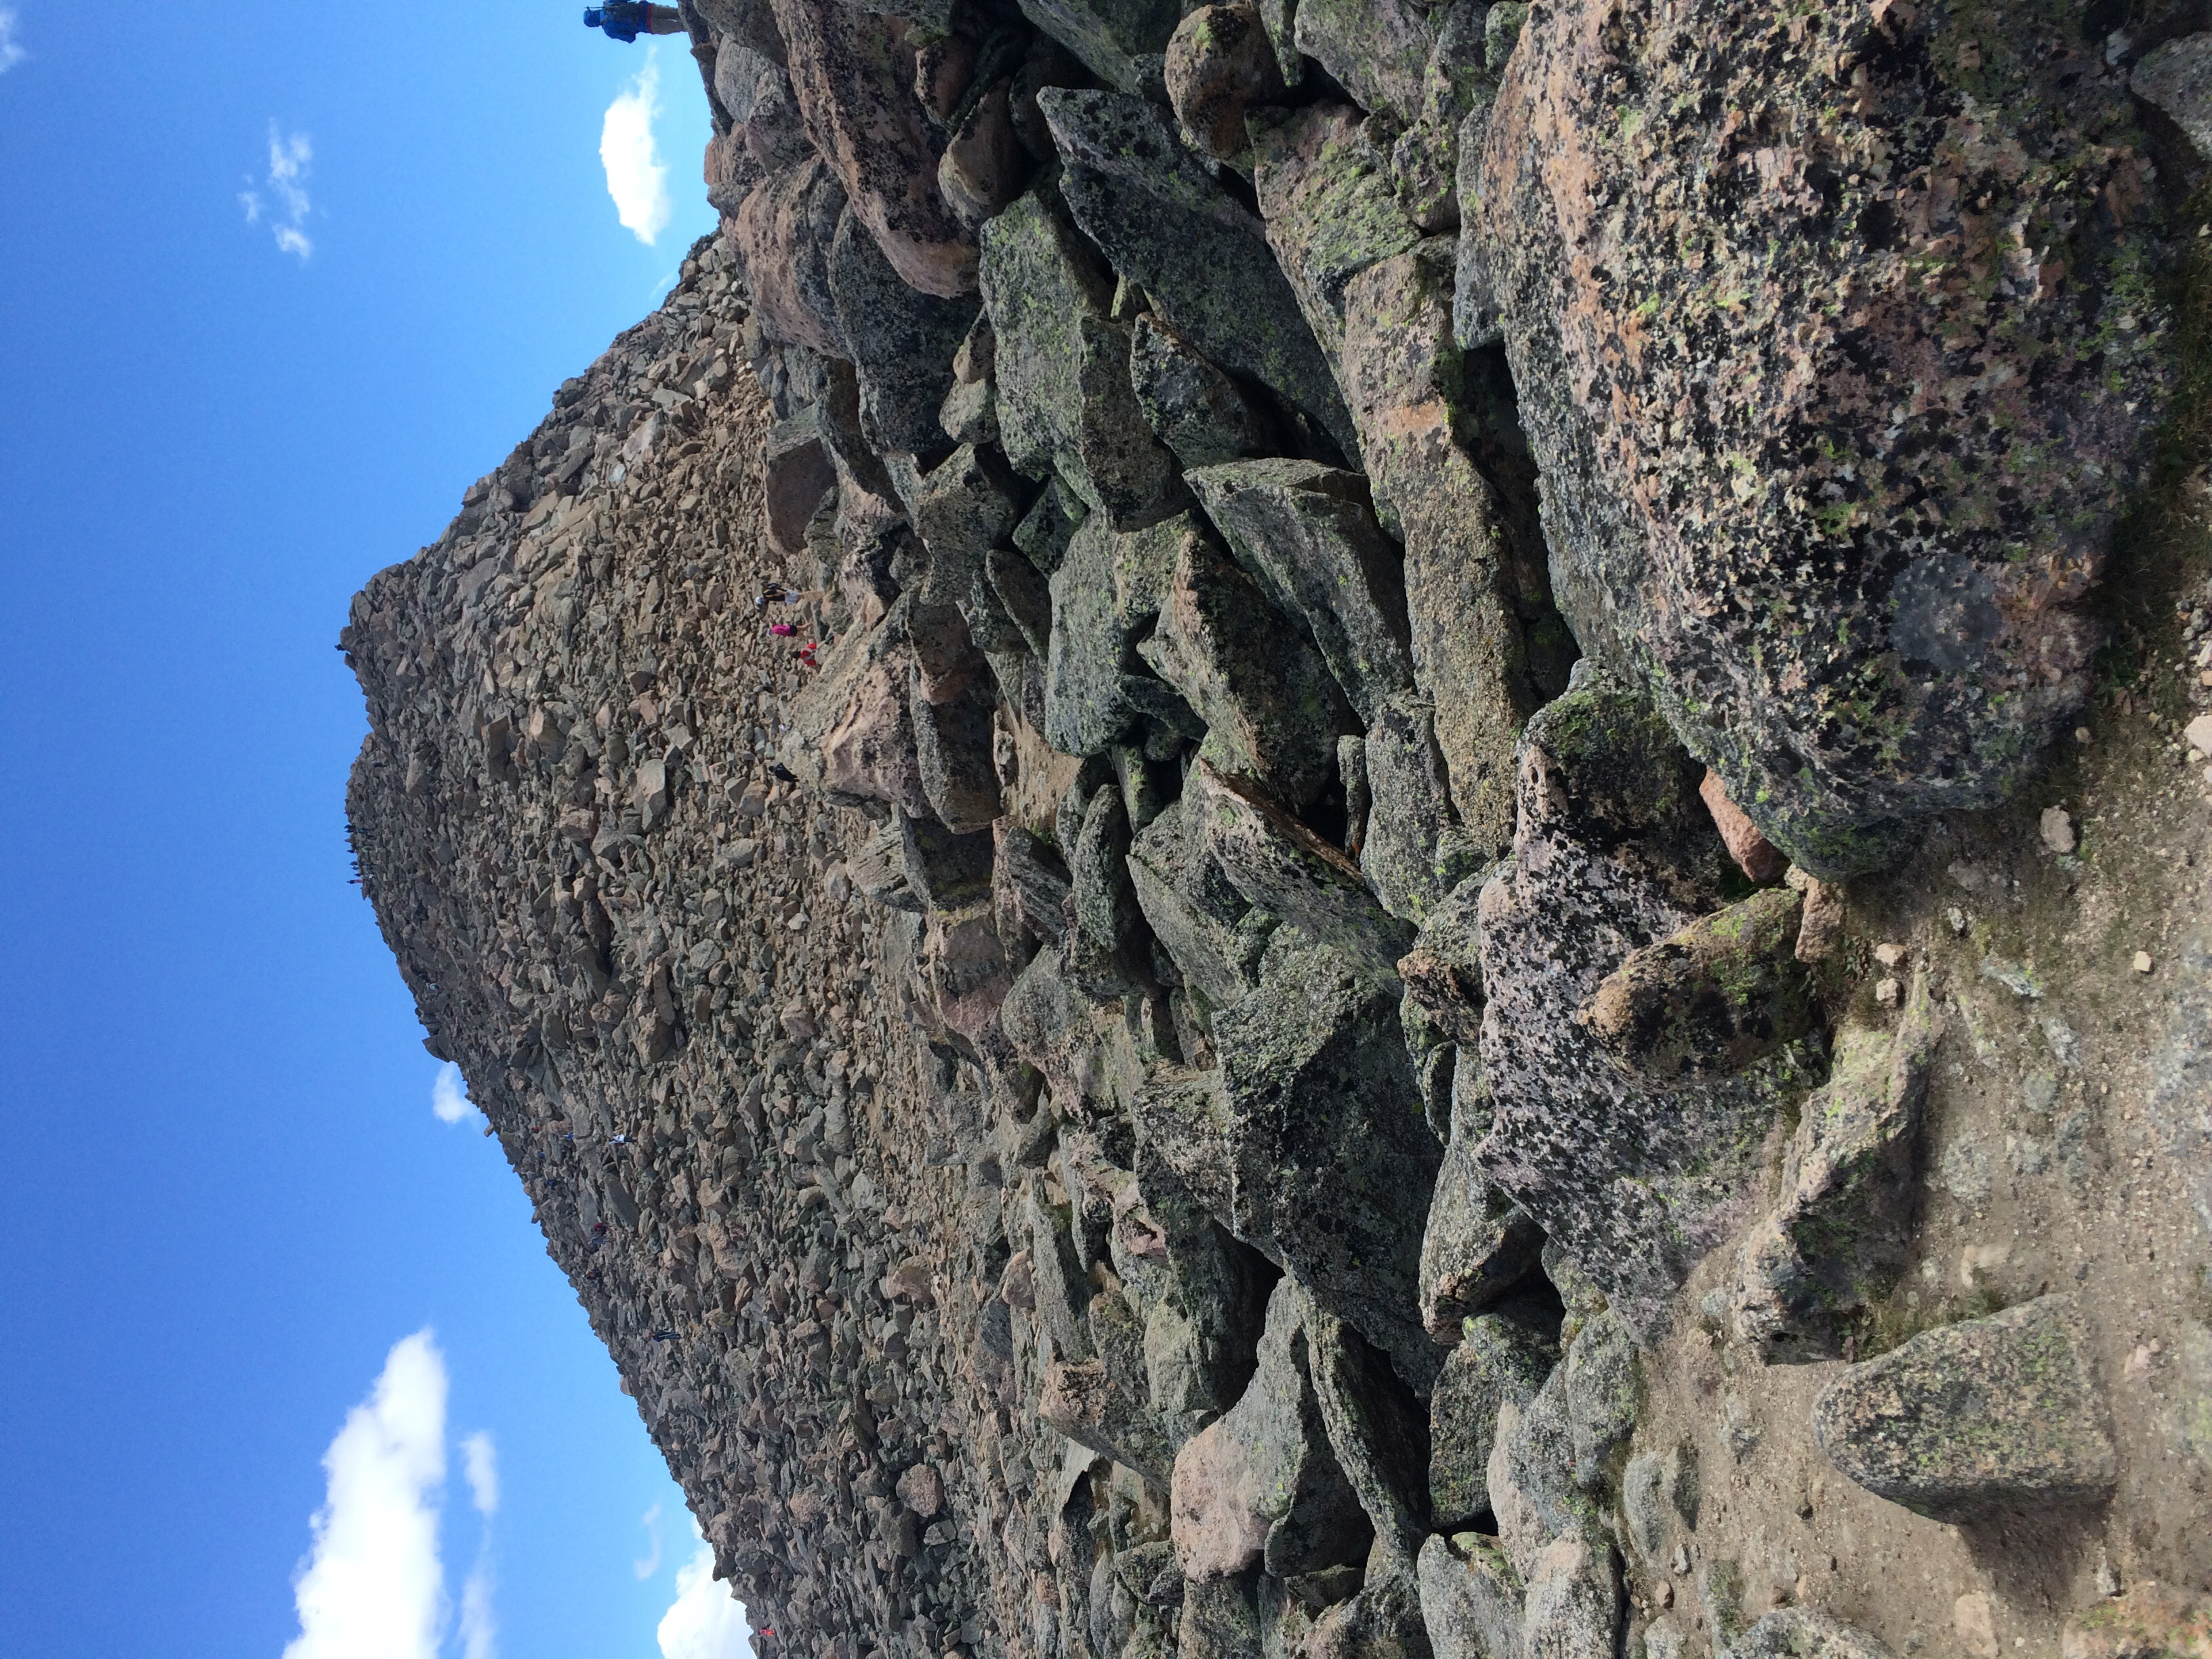 Well, this is the reason Mount Bierstadt is considered Class 2. Lots of scrambling and route-finding. (People for scale)